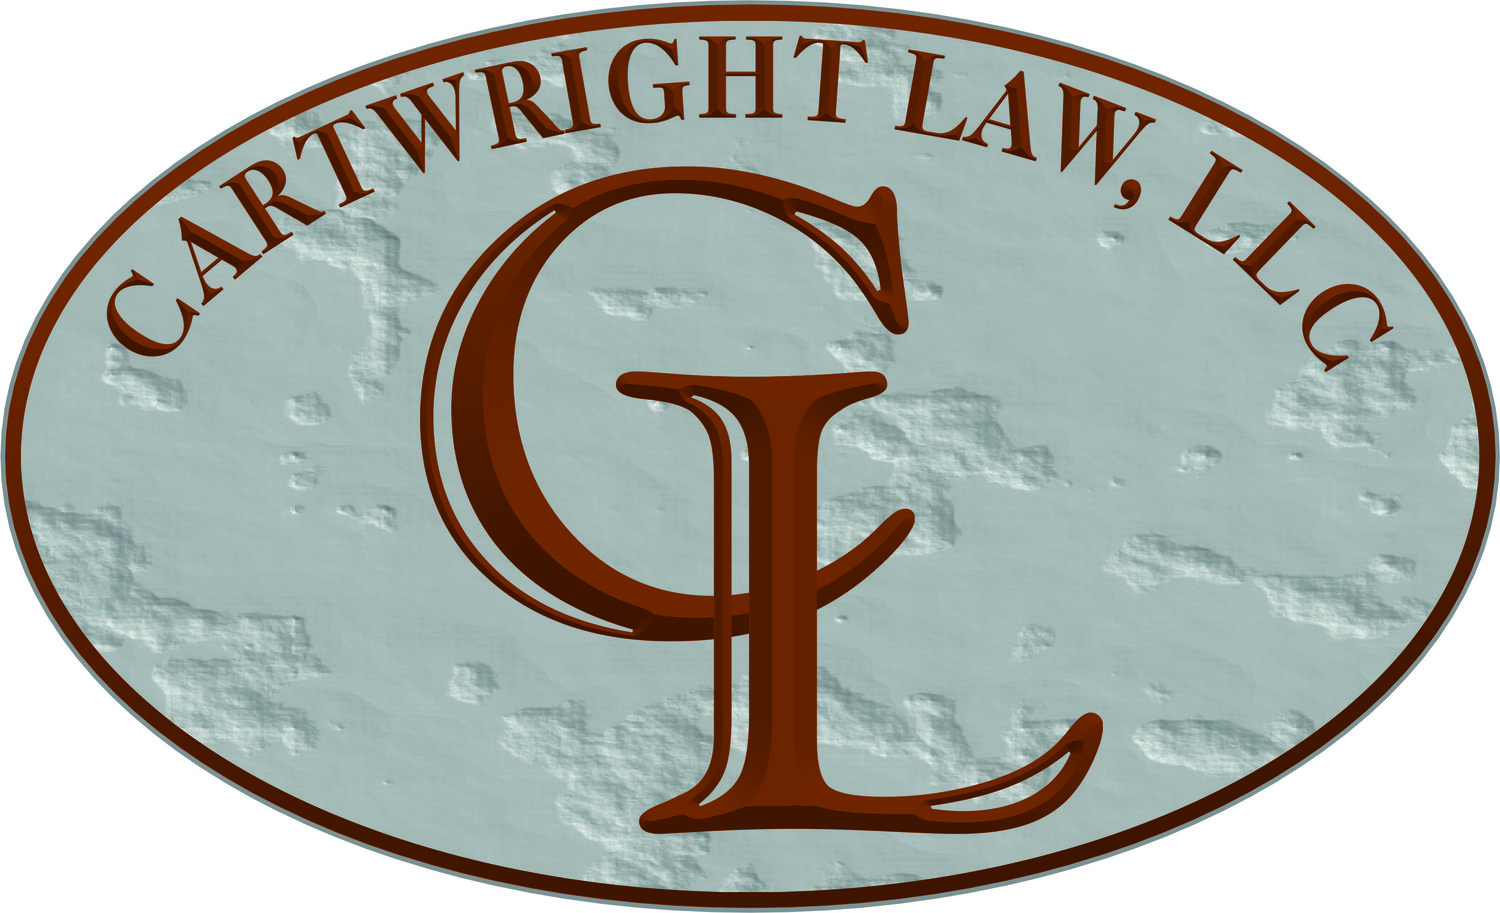 Cartwright Law LLC